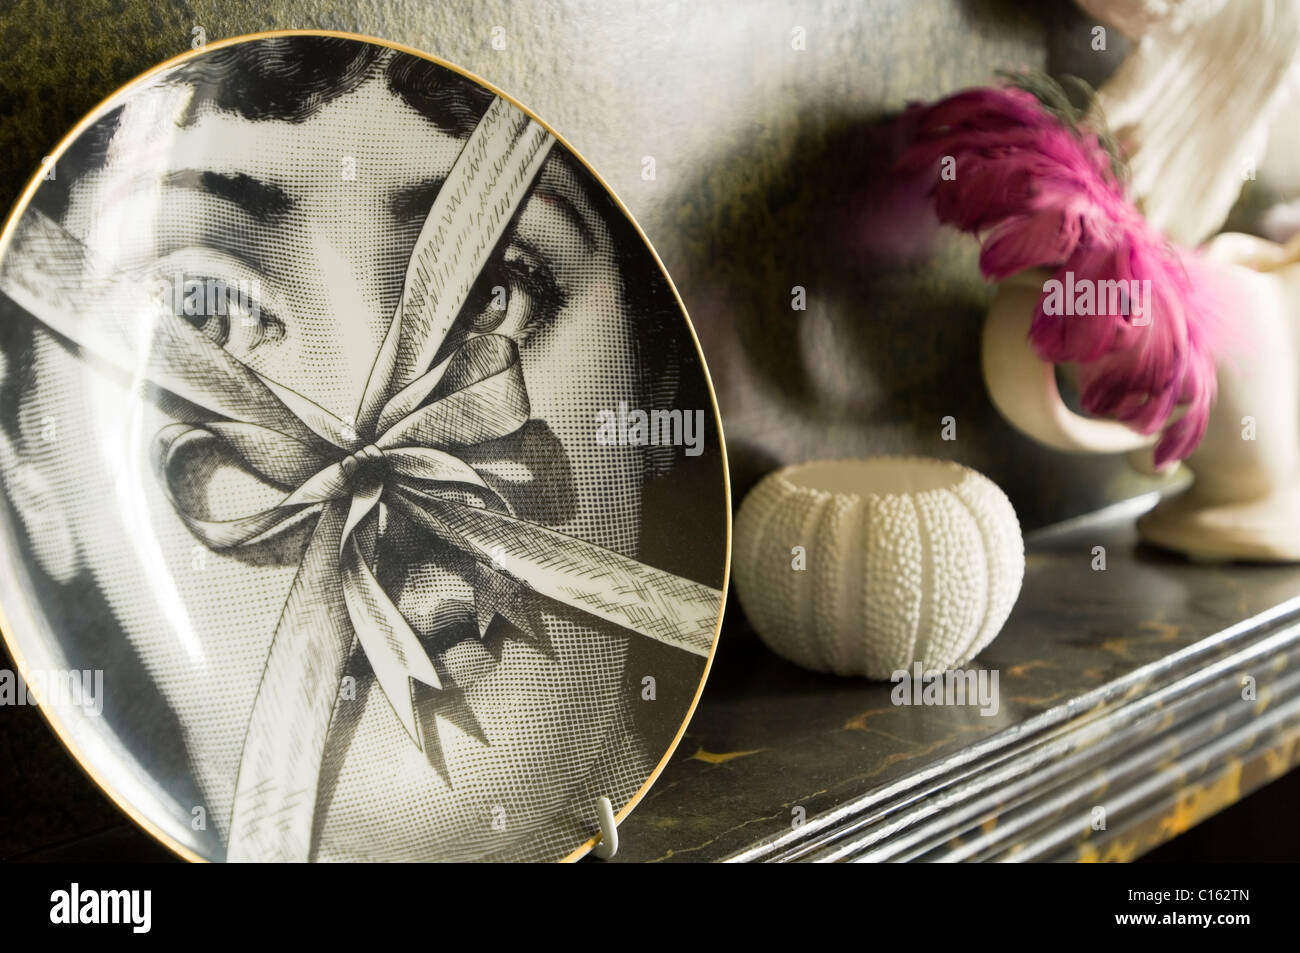 Fornasetti plate on marble mantelpiece with dead sea urchin - Stock Image